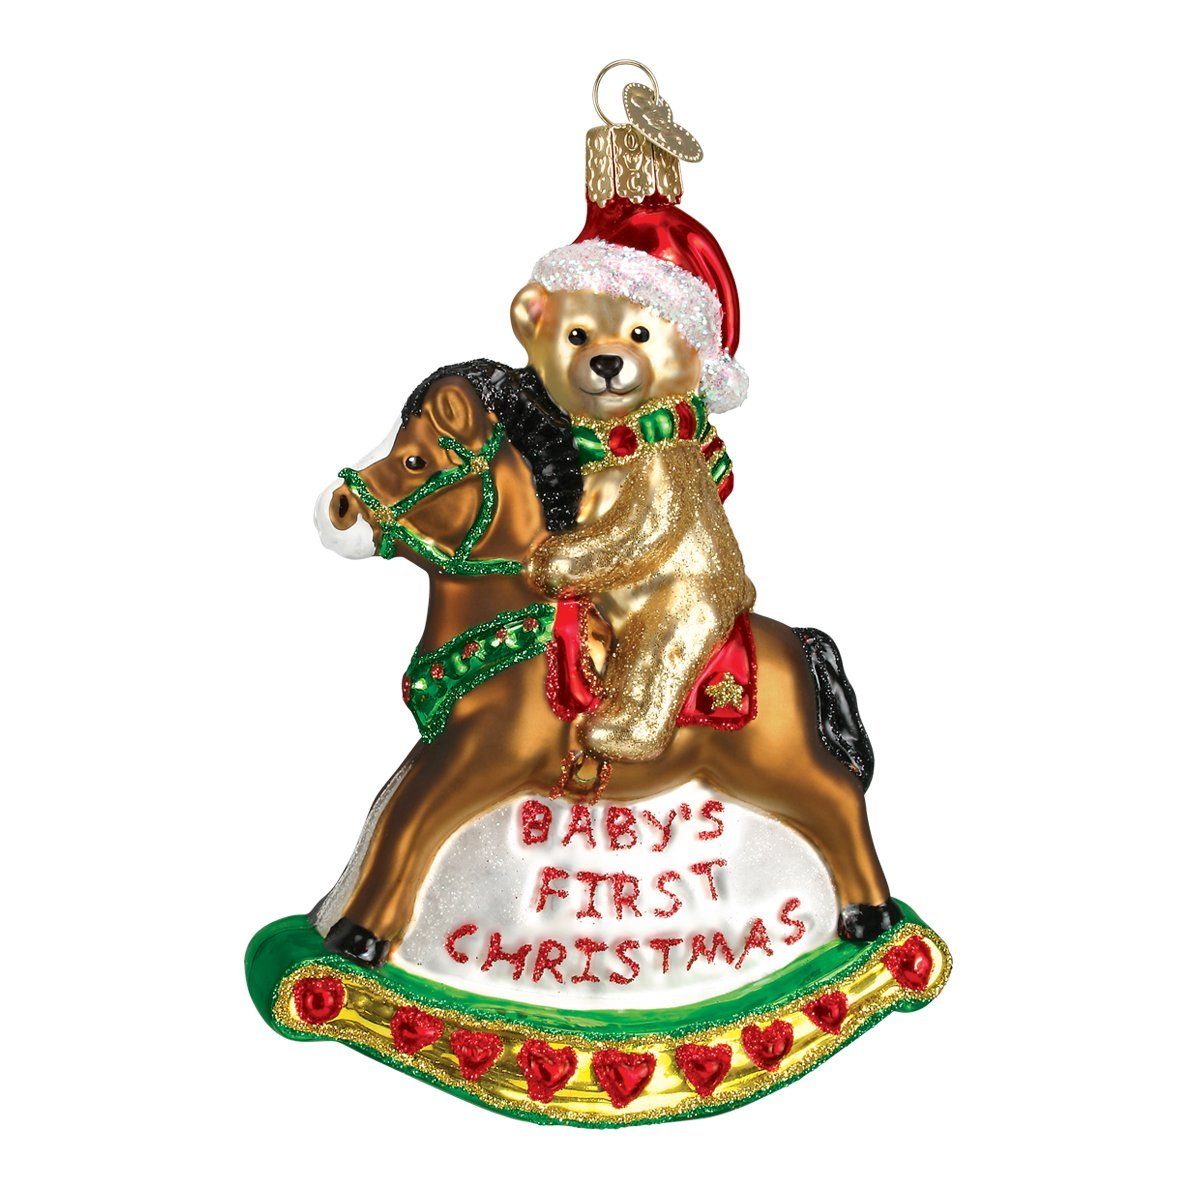 Amazon.com: Old World Christmas Ornaments: Rocking Horse Teddy Glass ...